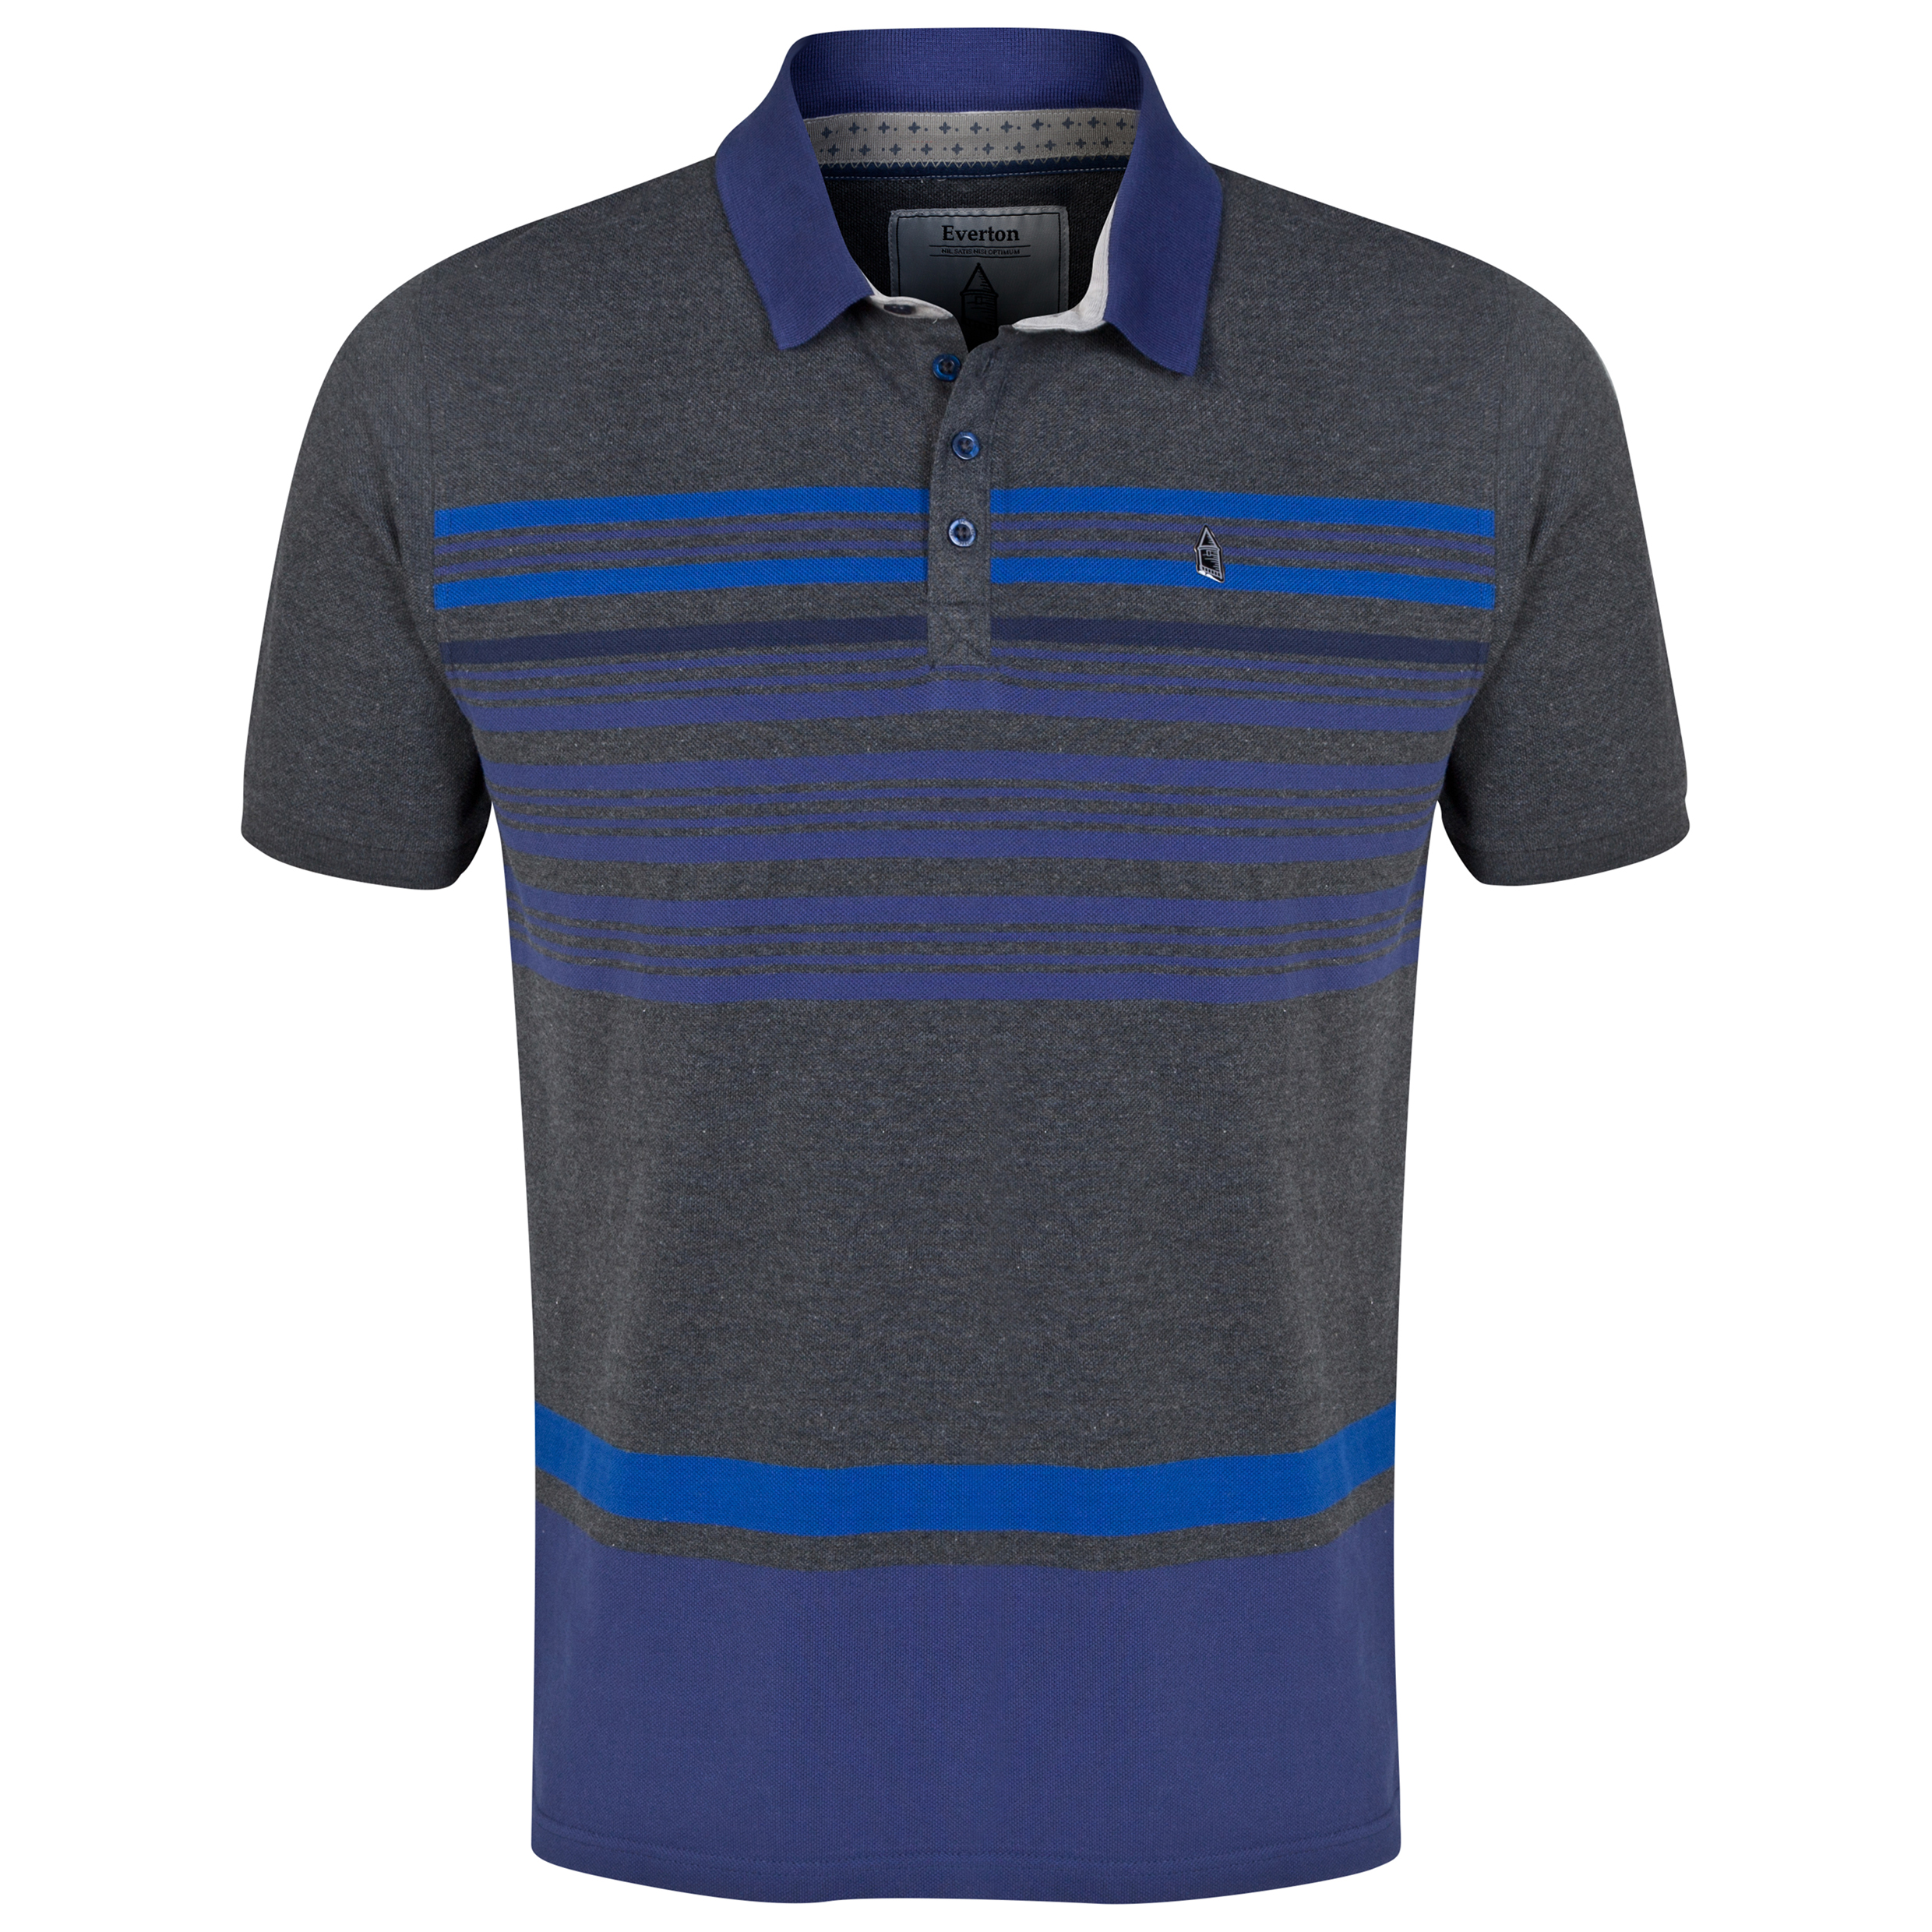 Everton Stripe Polo Shirt